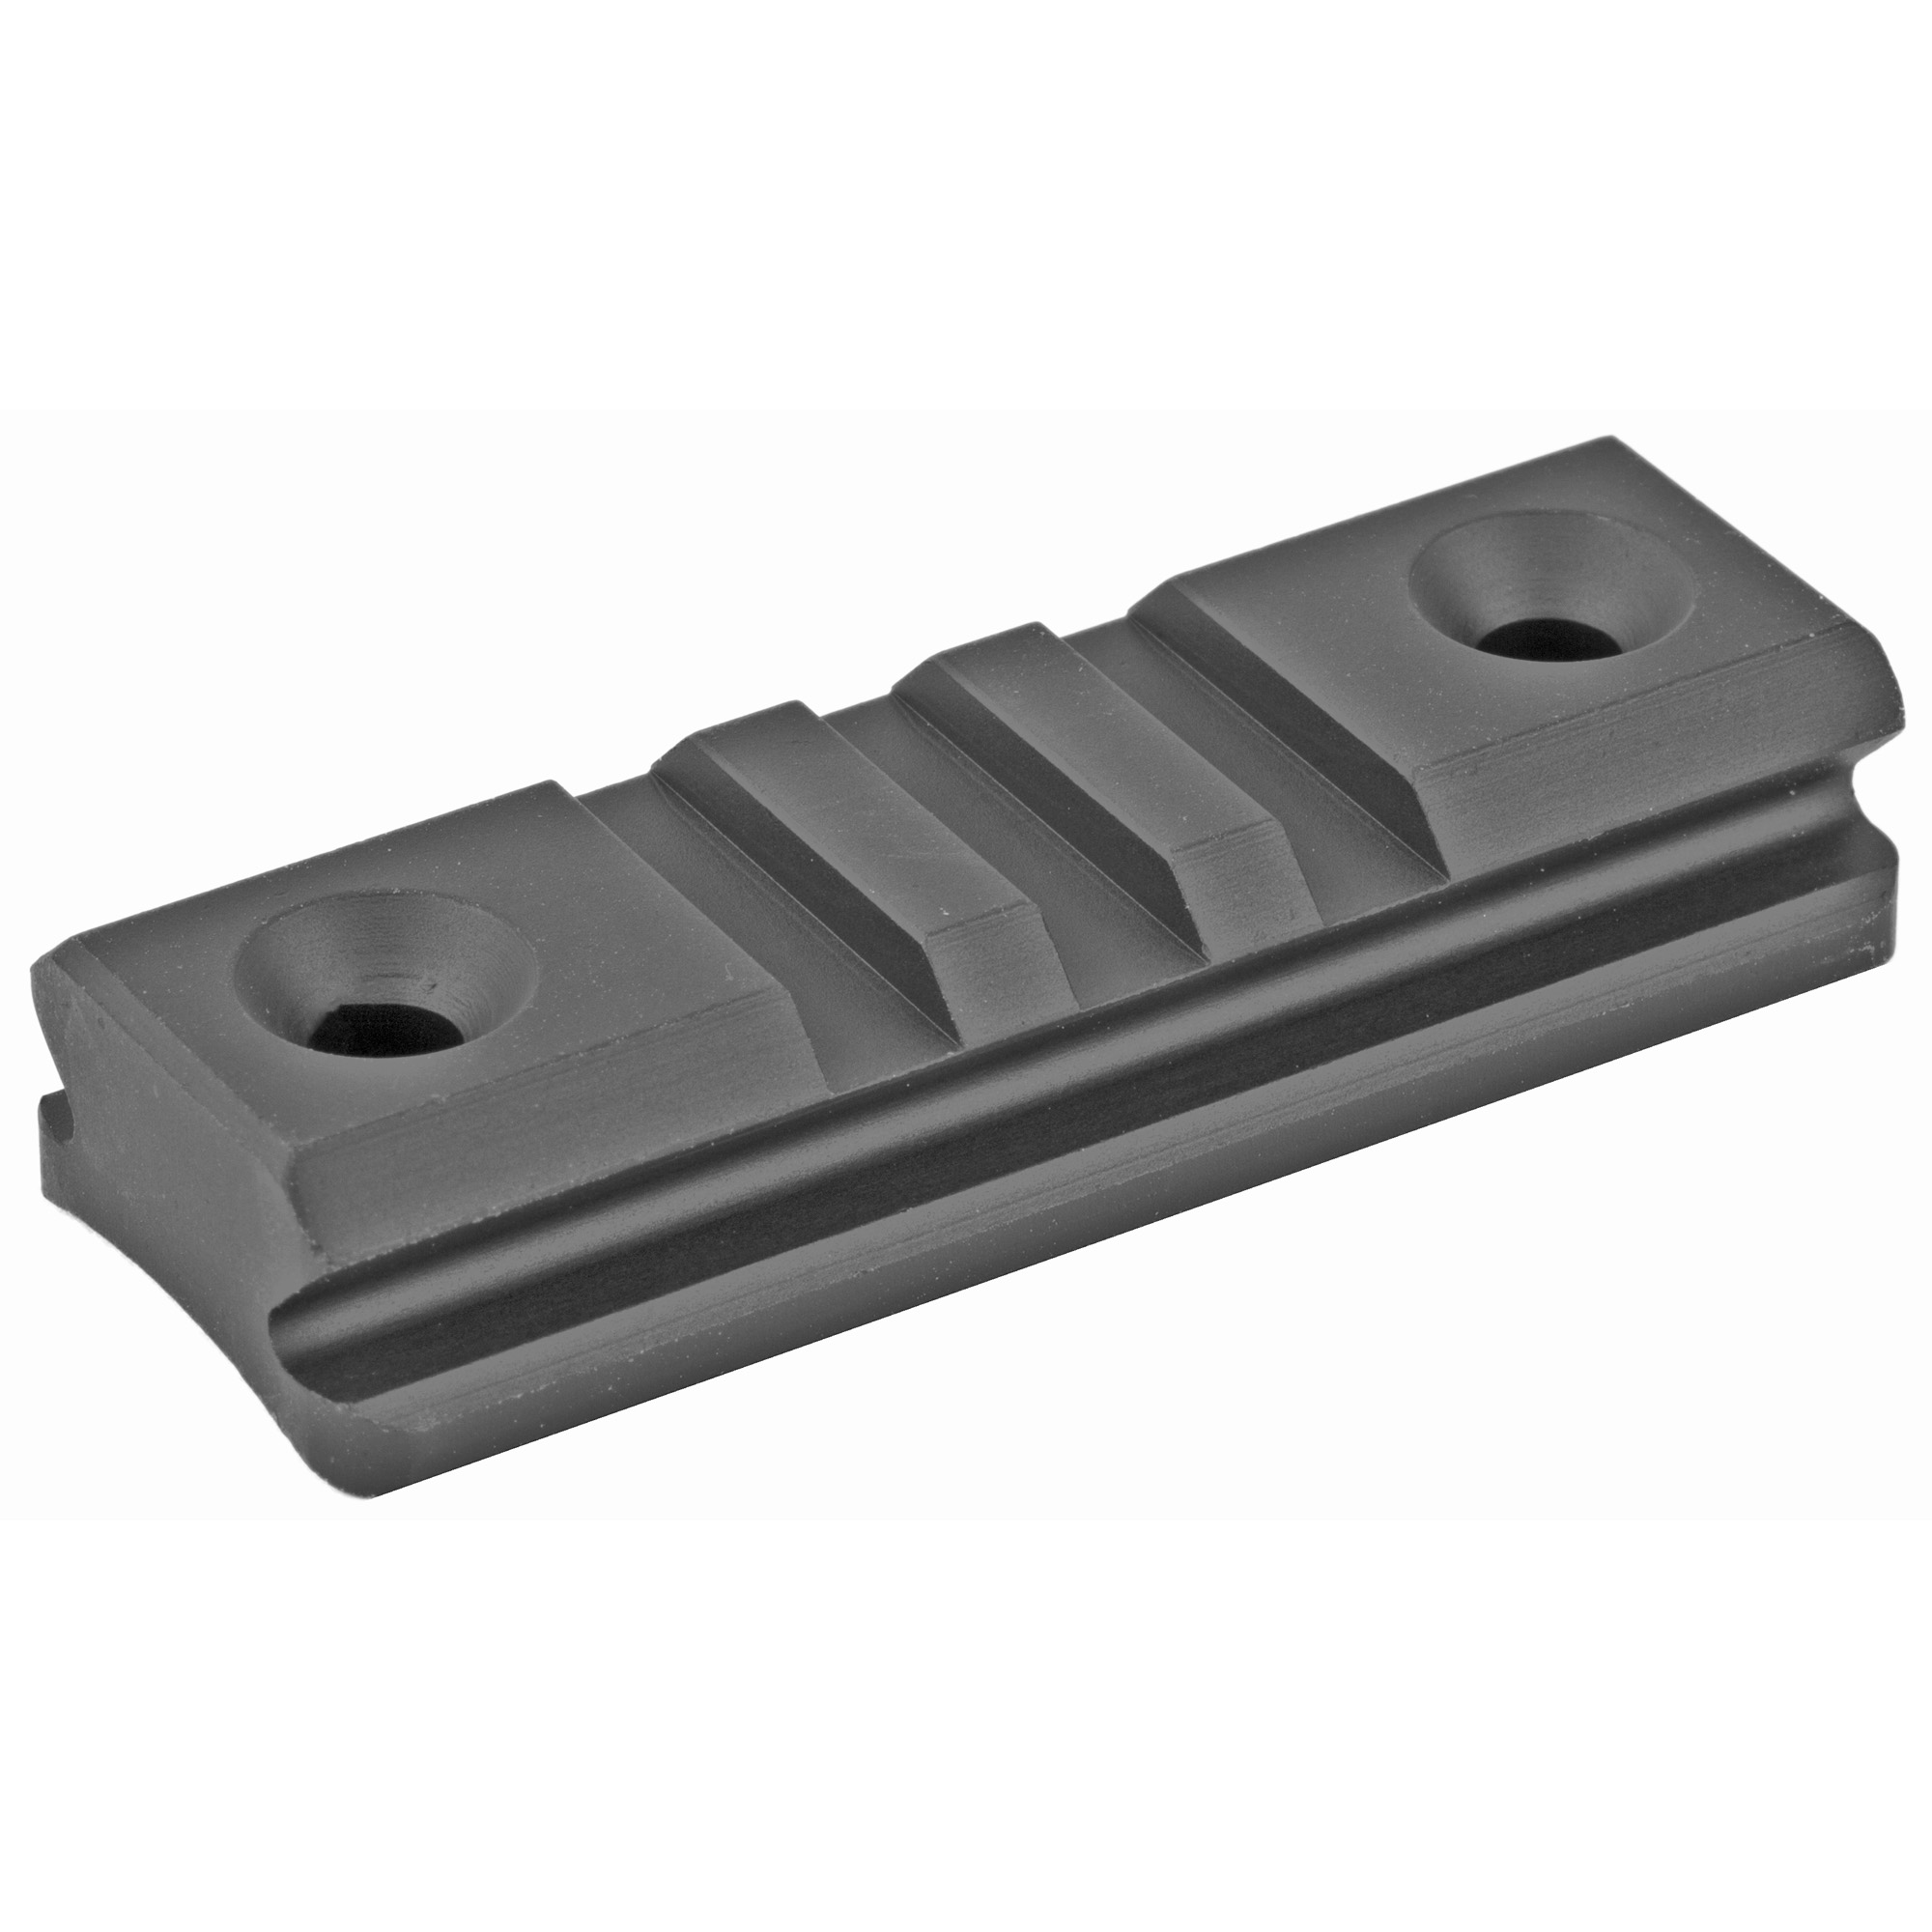 Accu-tac Picatinny Rail Mount